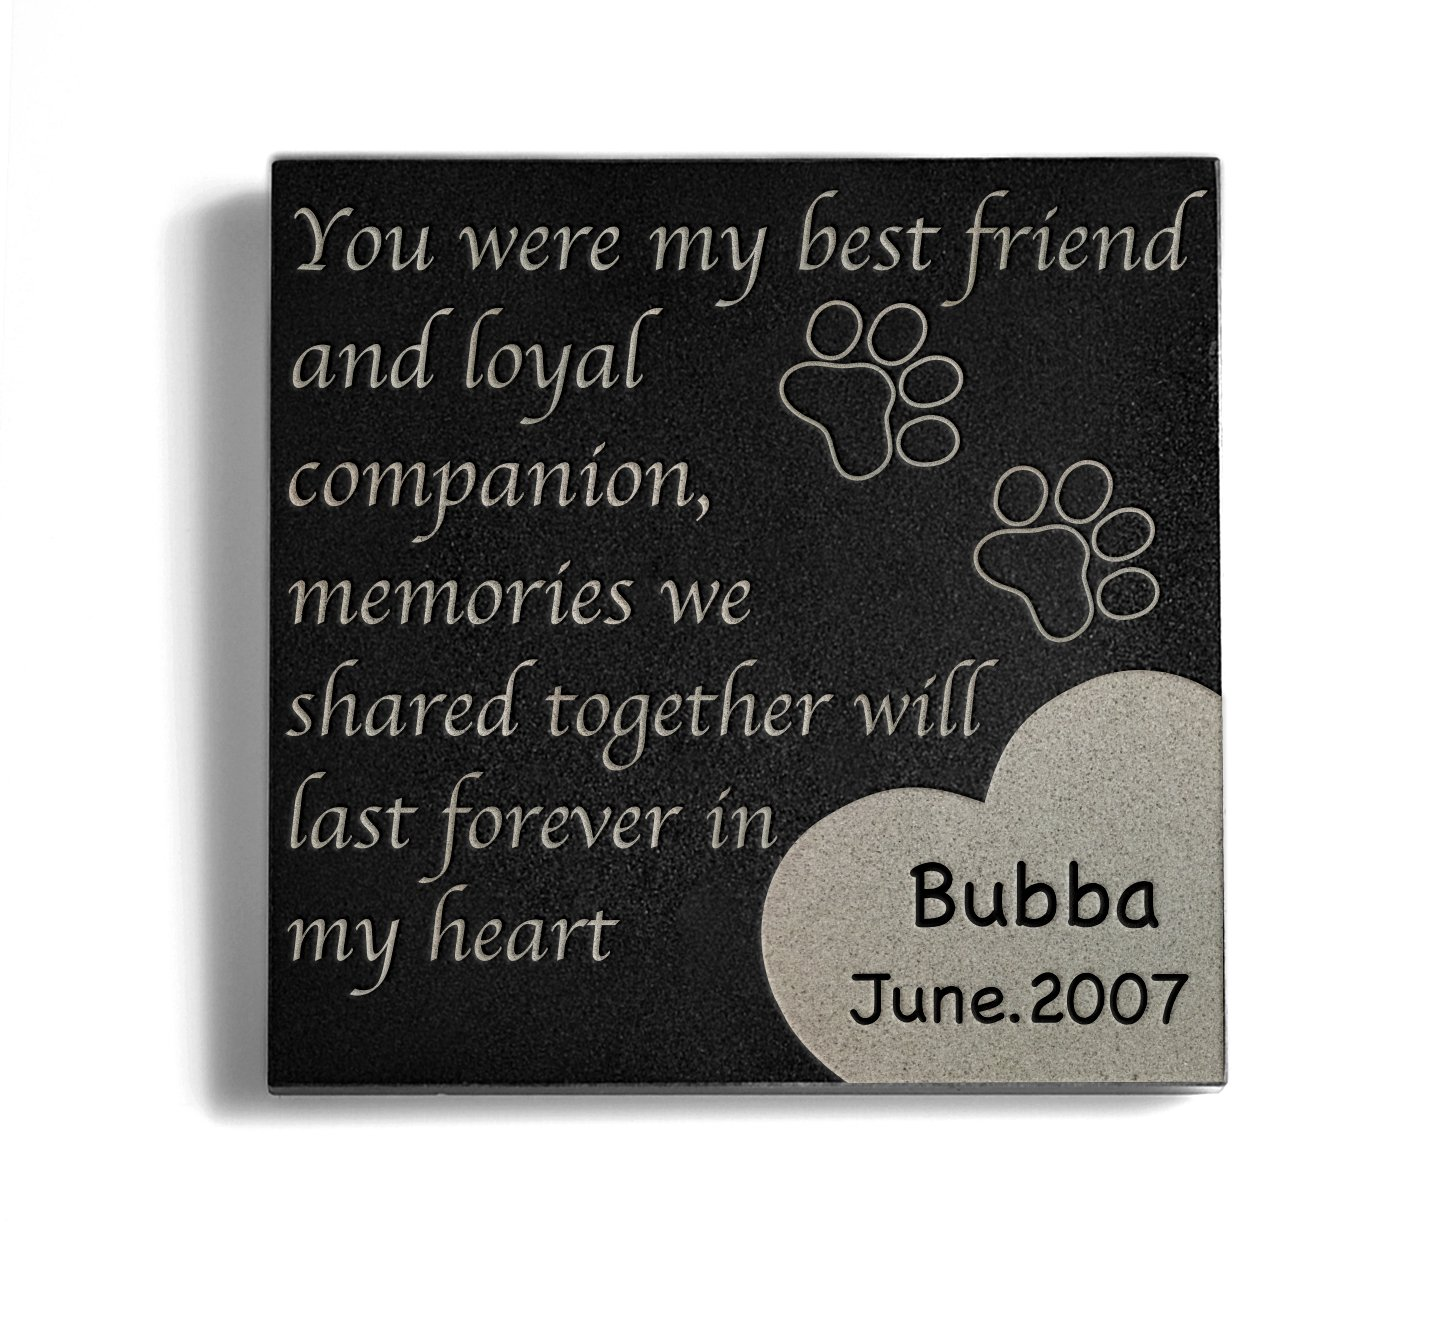 Personalized Memorial Pet Headstone Customized - Paw Print Left By You - 6 x 6 Granite